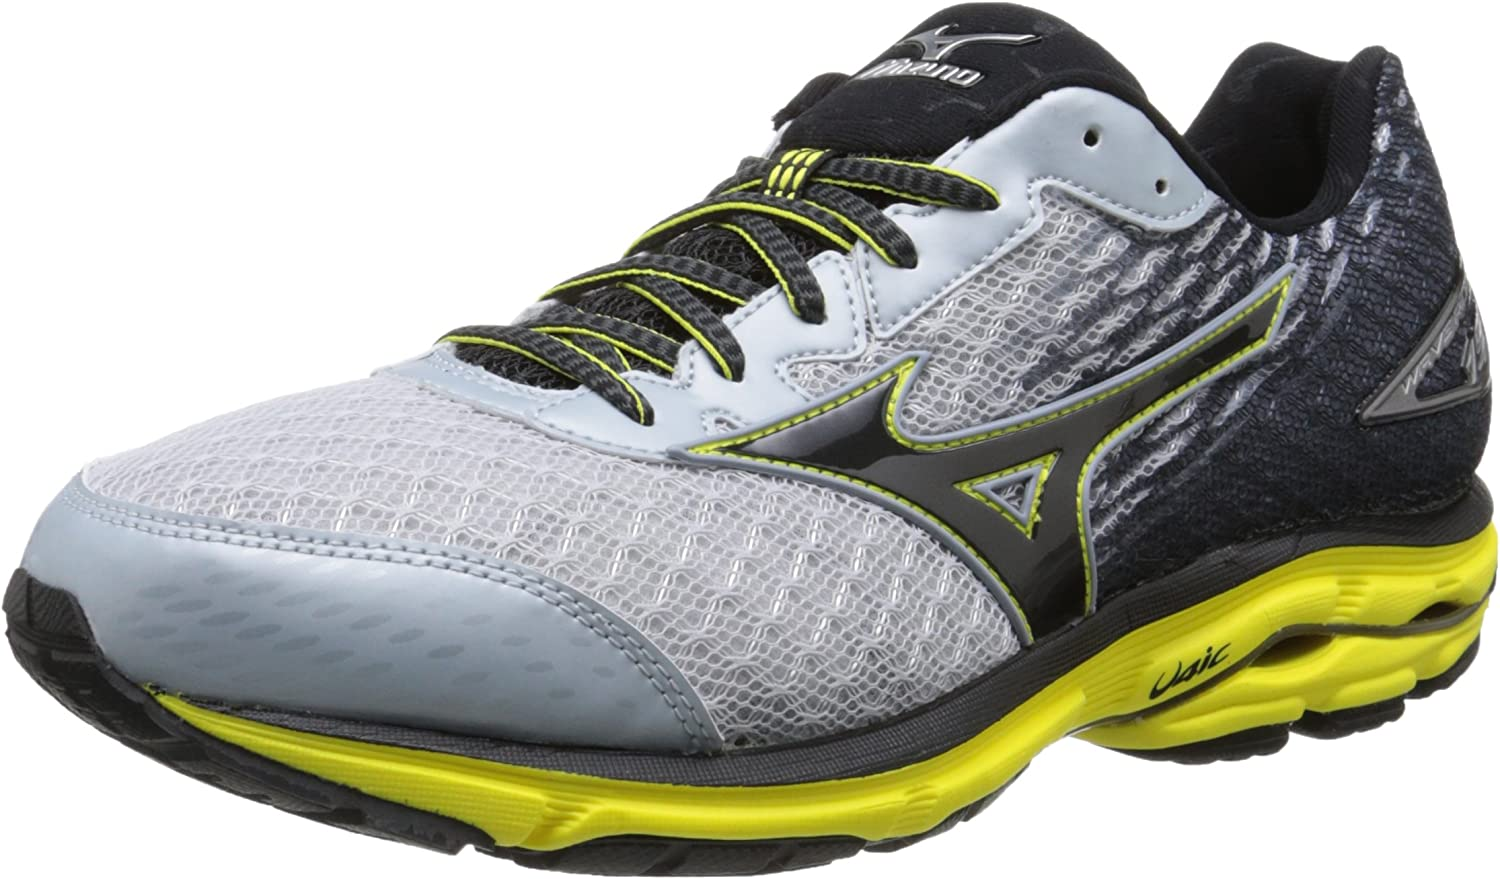 mizuno men's wave rider 18 2e running shoes